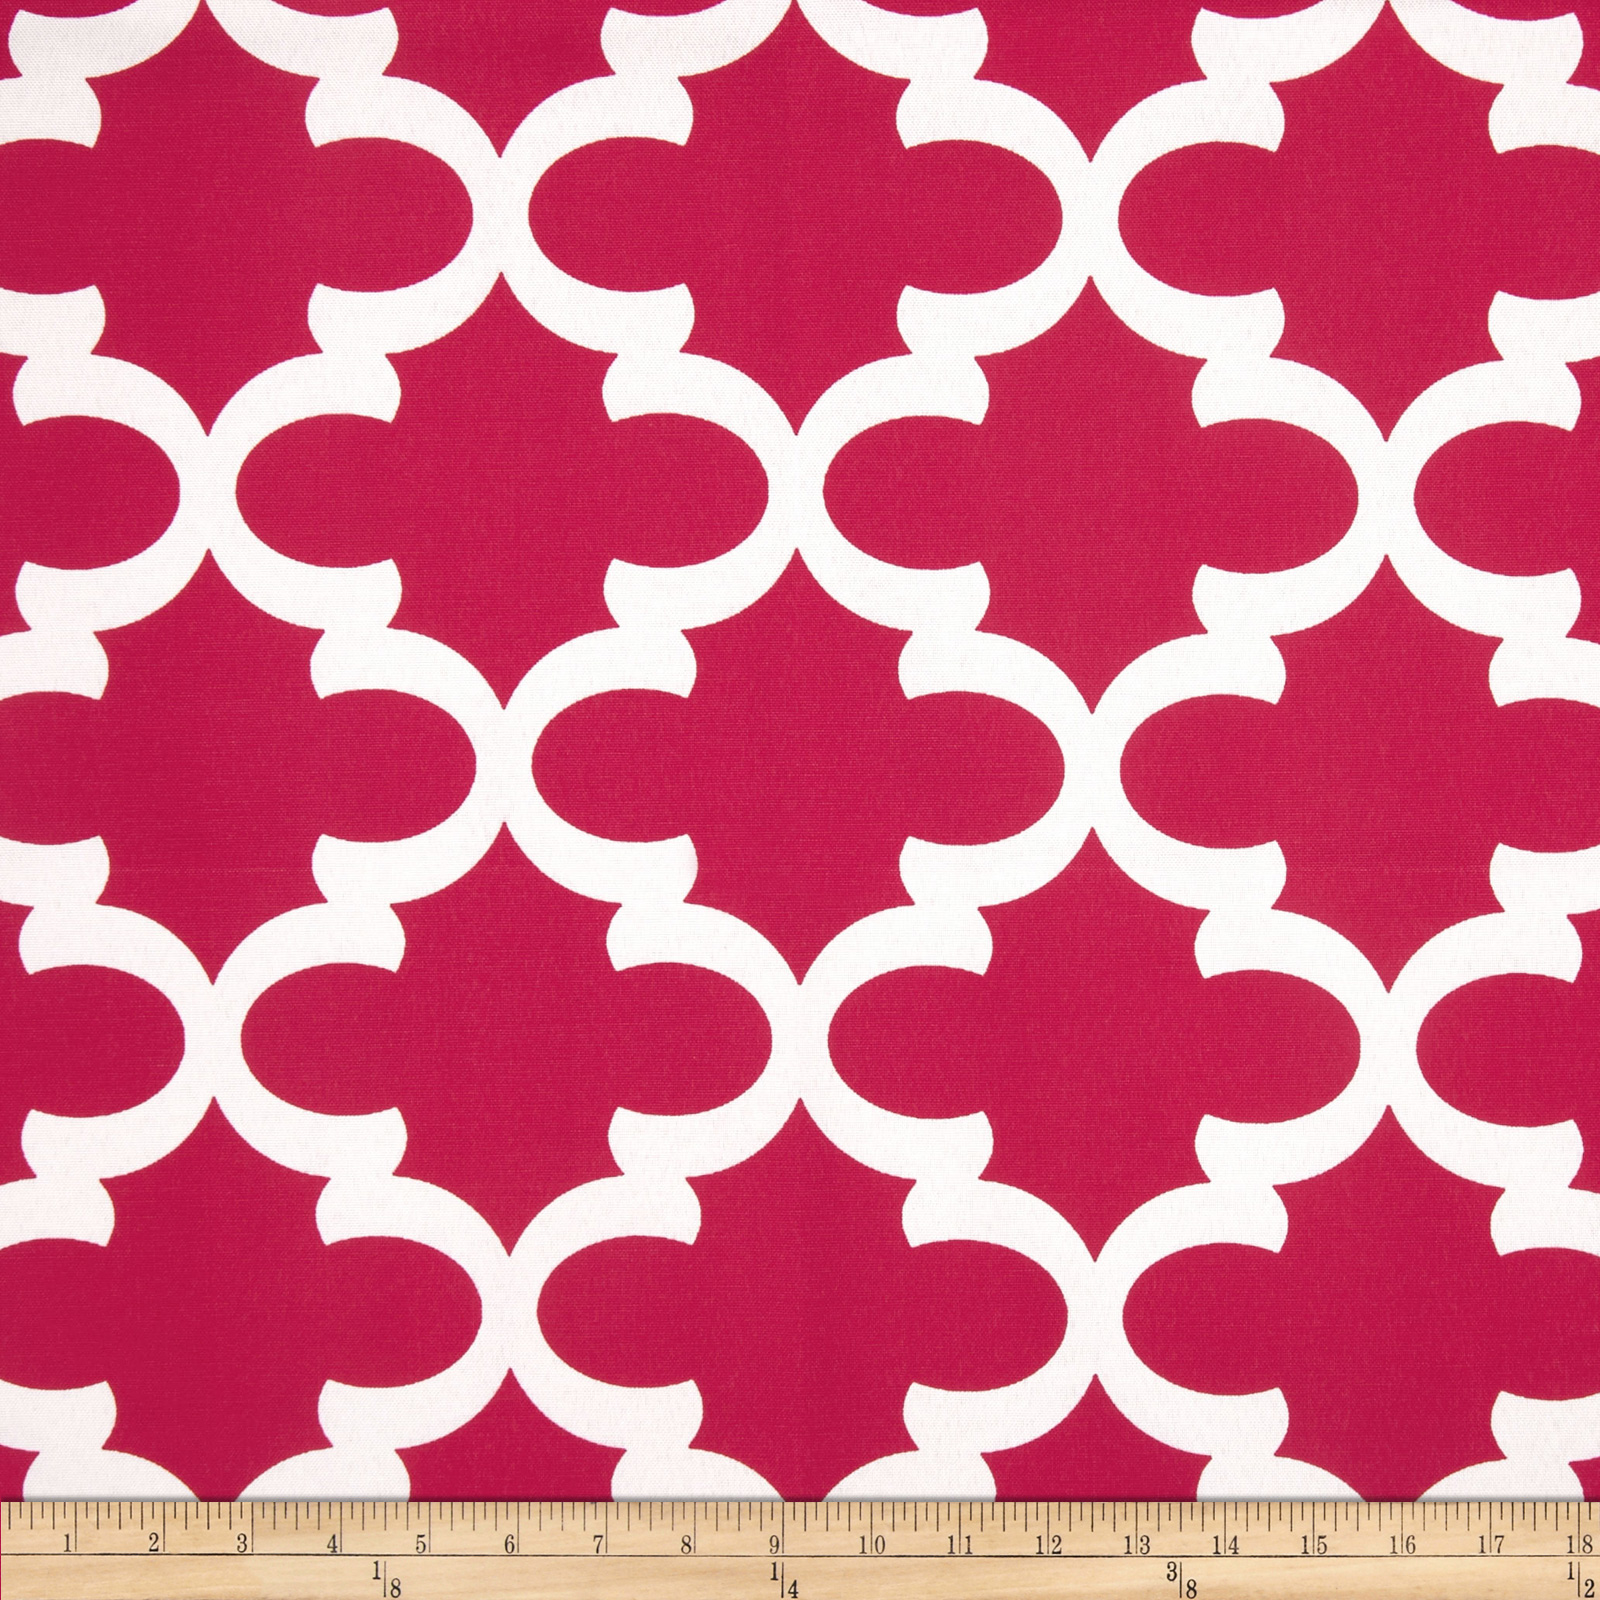 Premier Prints Fynn Candy Pink Fabric